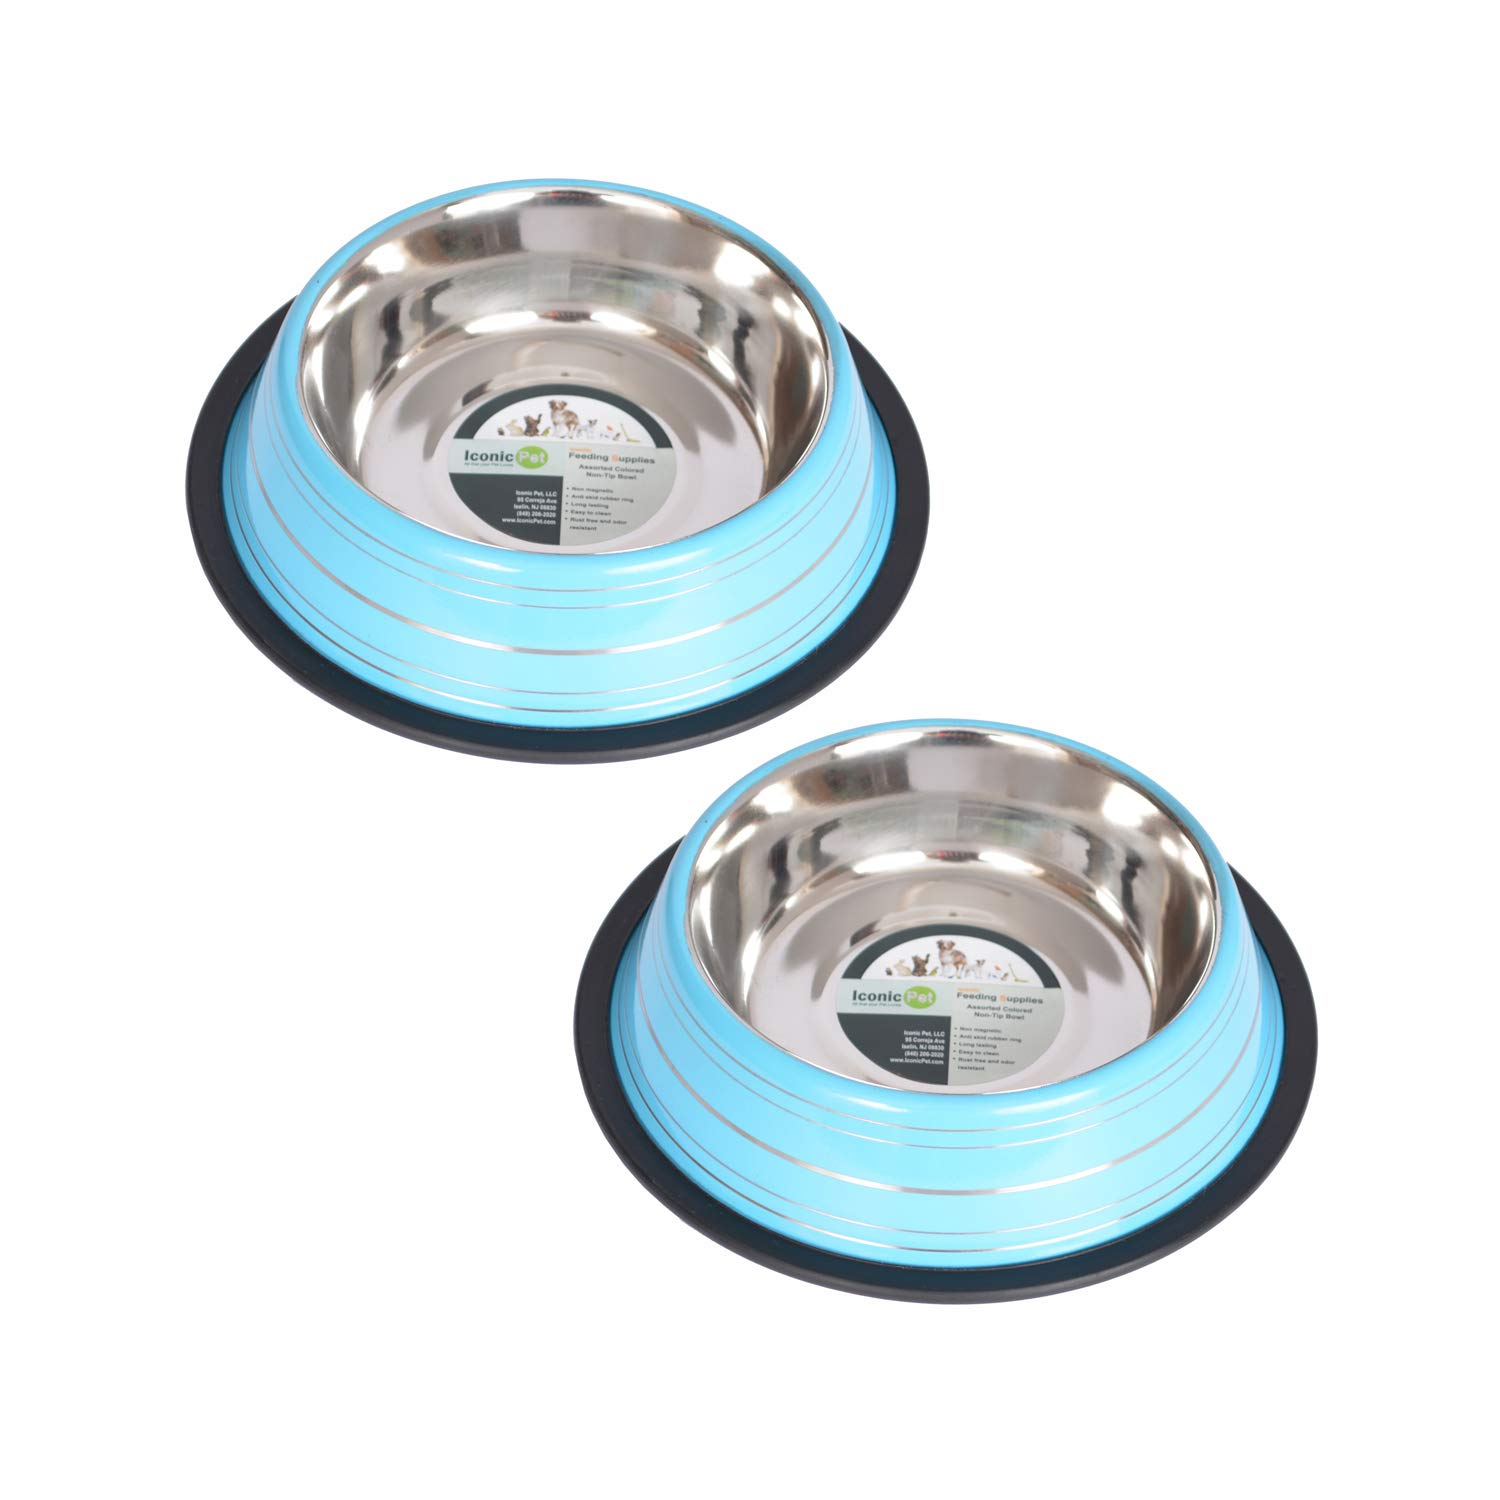 bluee 3 Cup 24 oz. bluee 3 Cup 24 oz. Iconic Pet 2 Pack color Splash Stripe Non-Skid Pet Bowl for Dog or Cat-bluee-24-Ounce-3 Cup